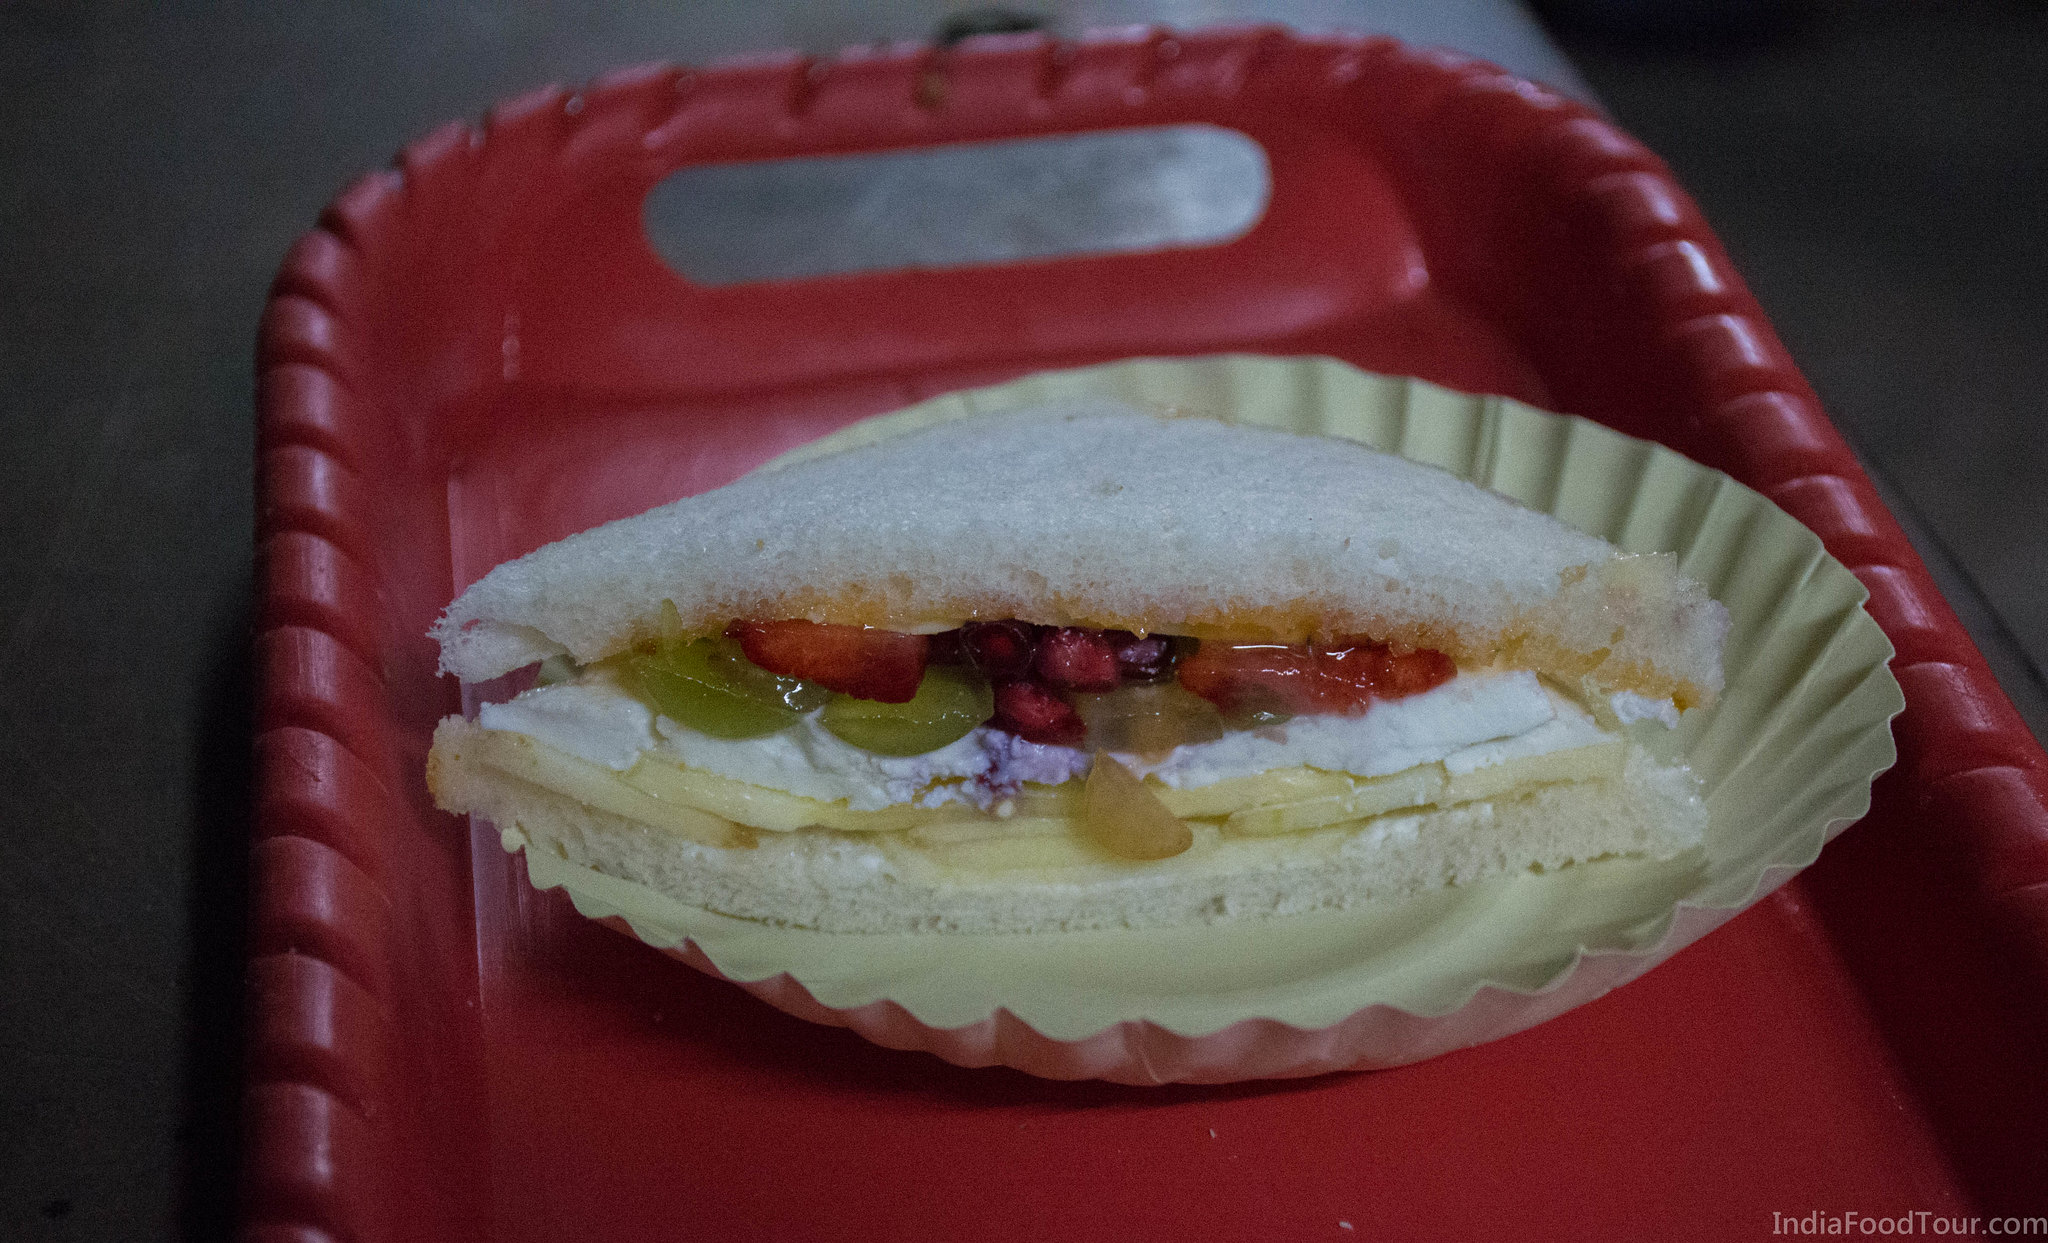 A very unique fruit sandwich sandwich with apple, pomegranate, pineapple, paneer, grapes and more